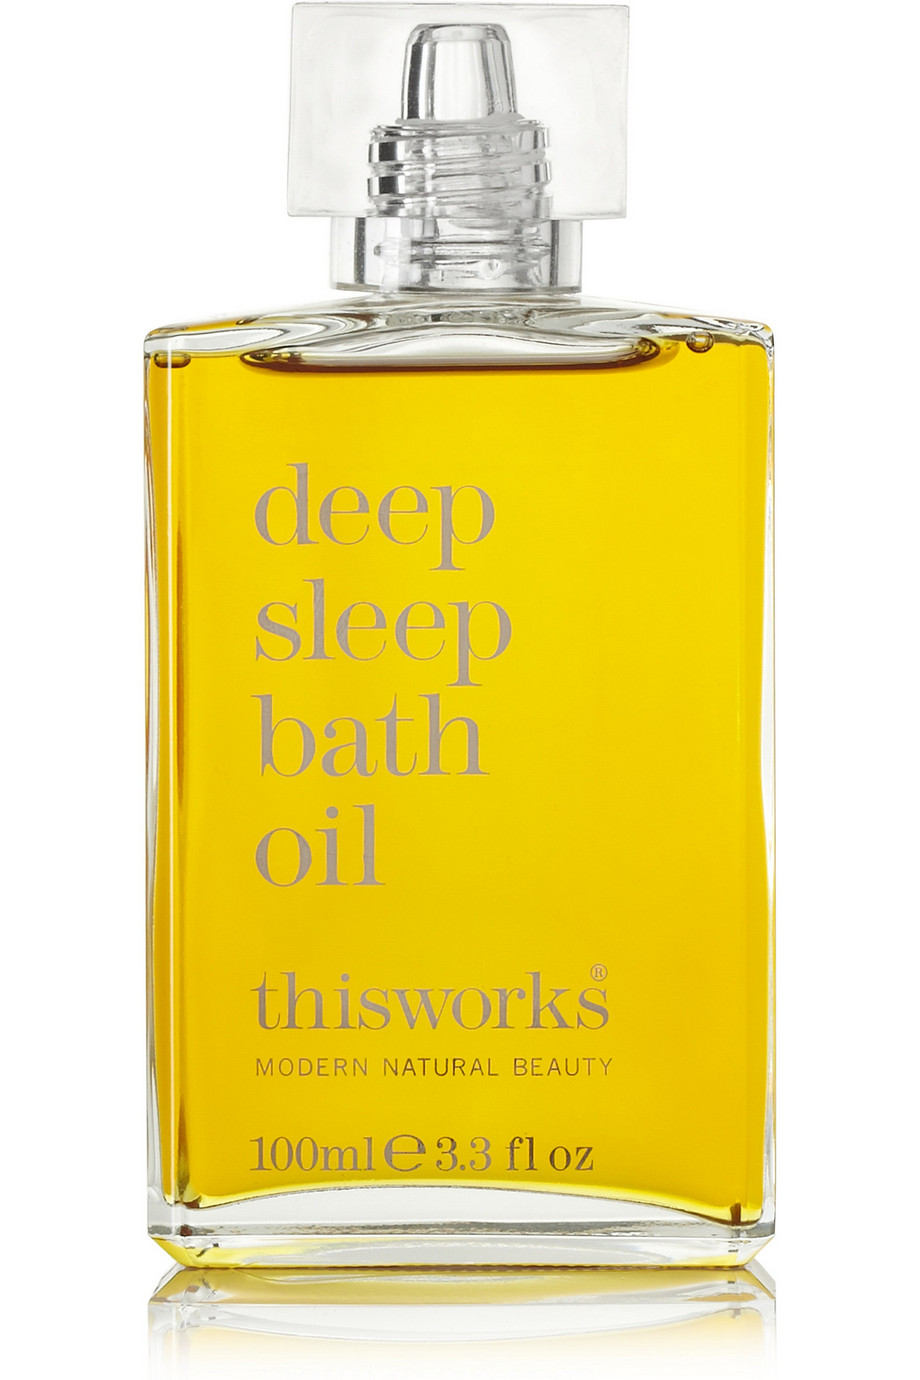 Deep Sleep Bath Oil, 100ml, by This Works